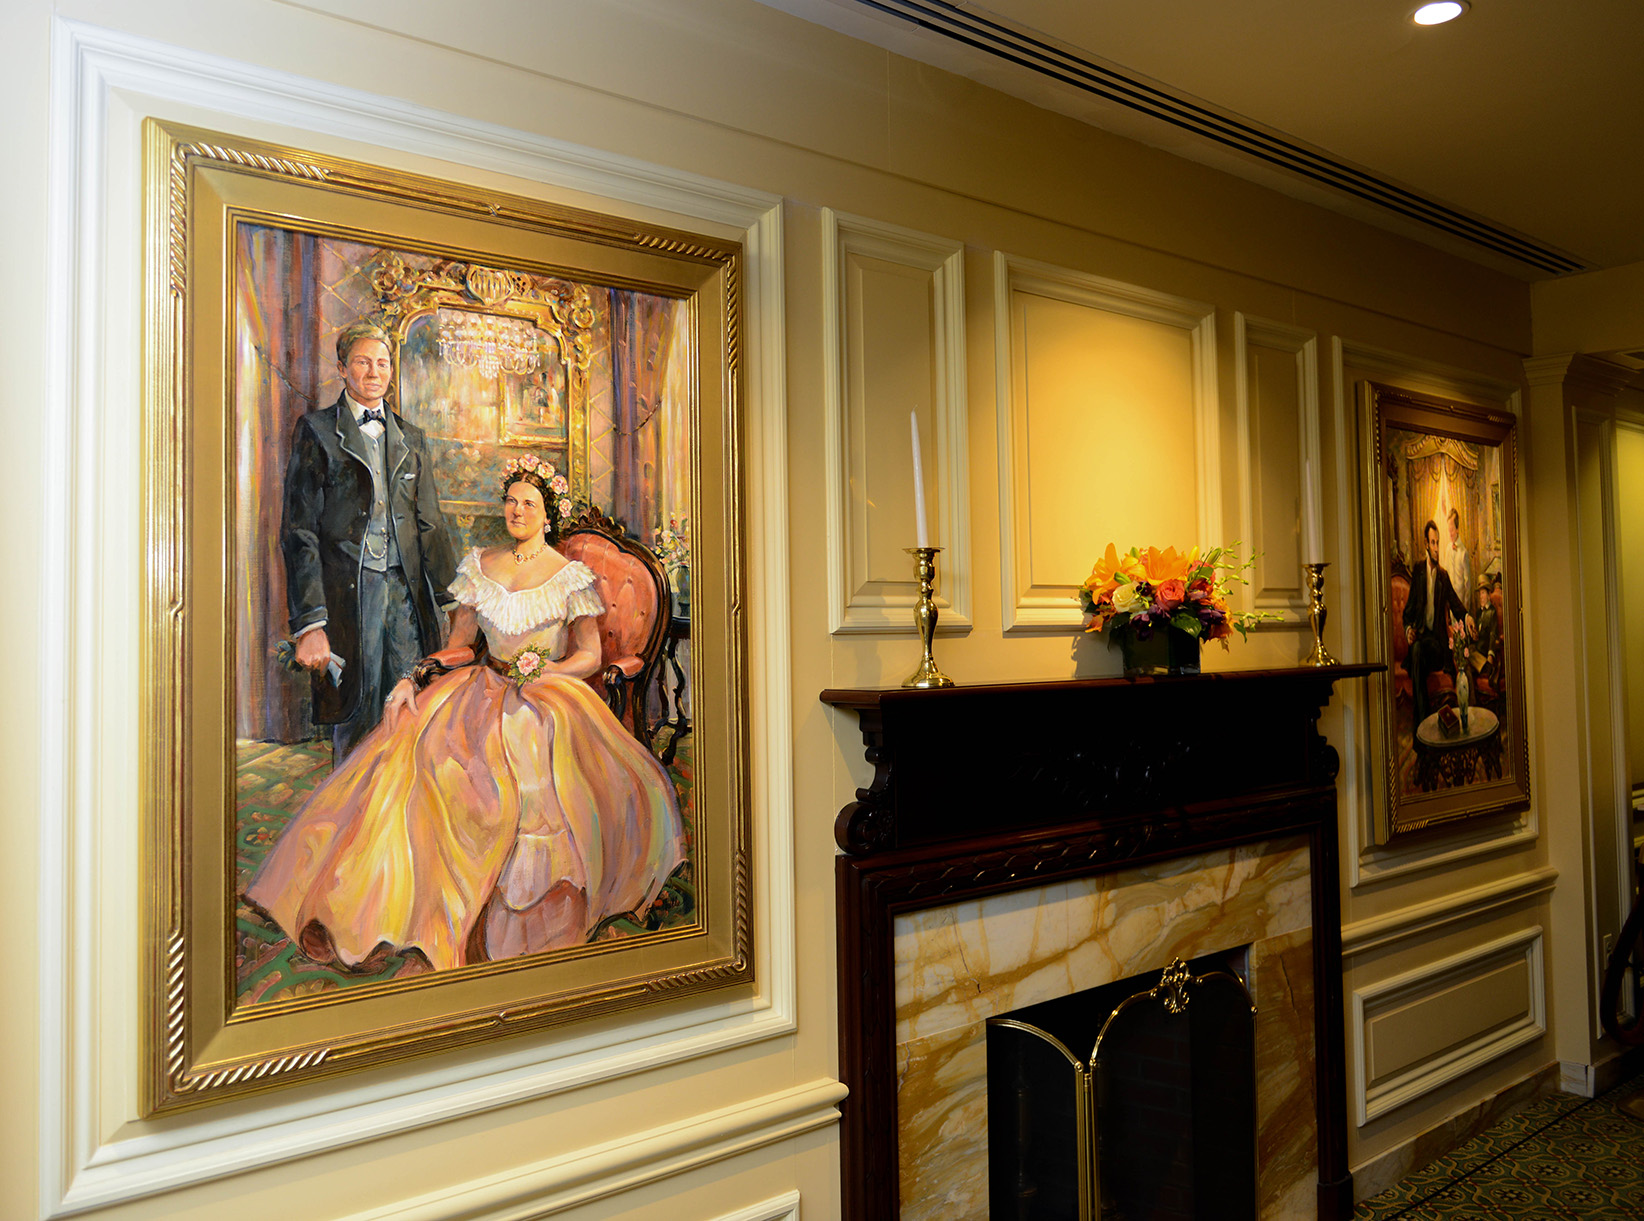 A painting of Abraham and Mary Lincoln hangs near a fireplace in the lobby of the Willard Hotel in Washington, D.C.